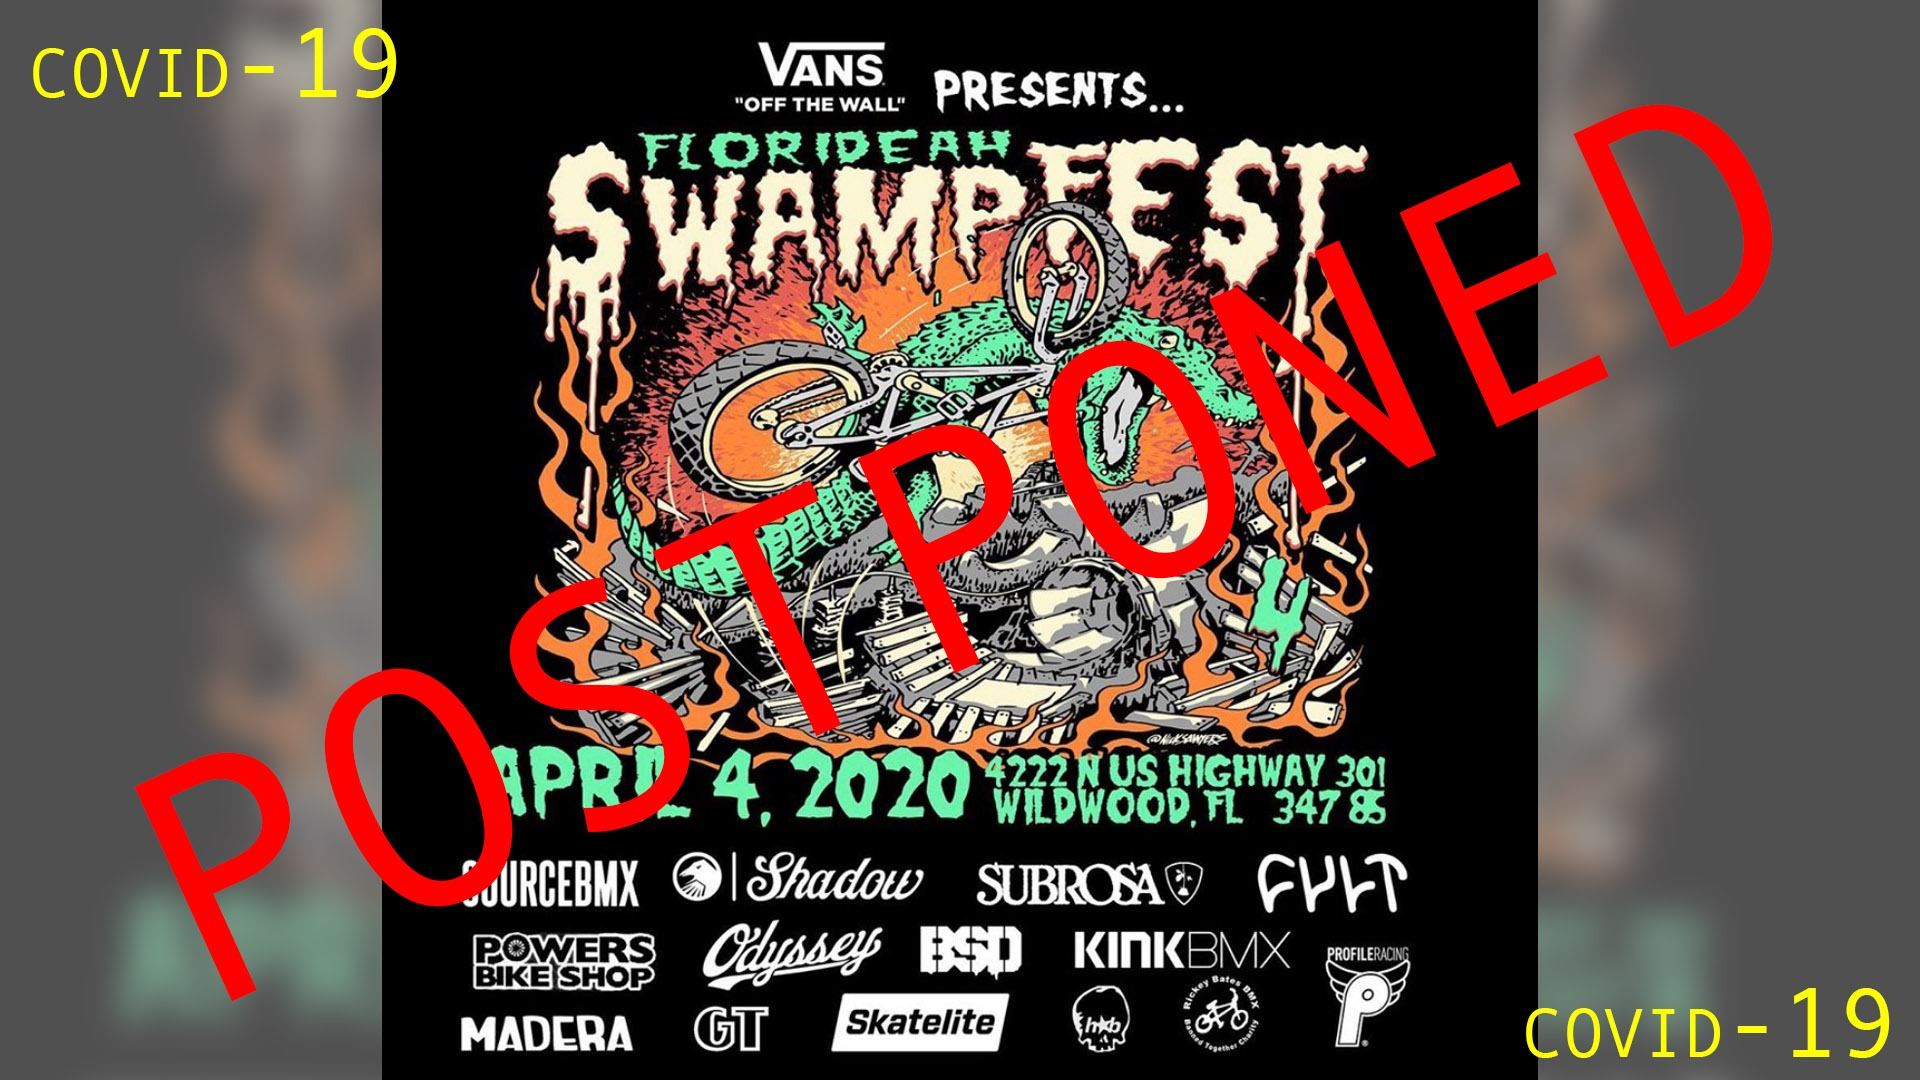 POSTPONED: Florideah Swampfest 2020 - now 23rd May